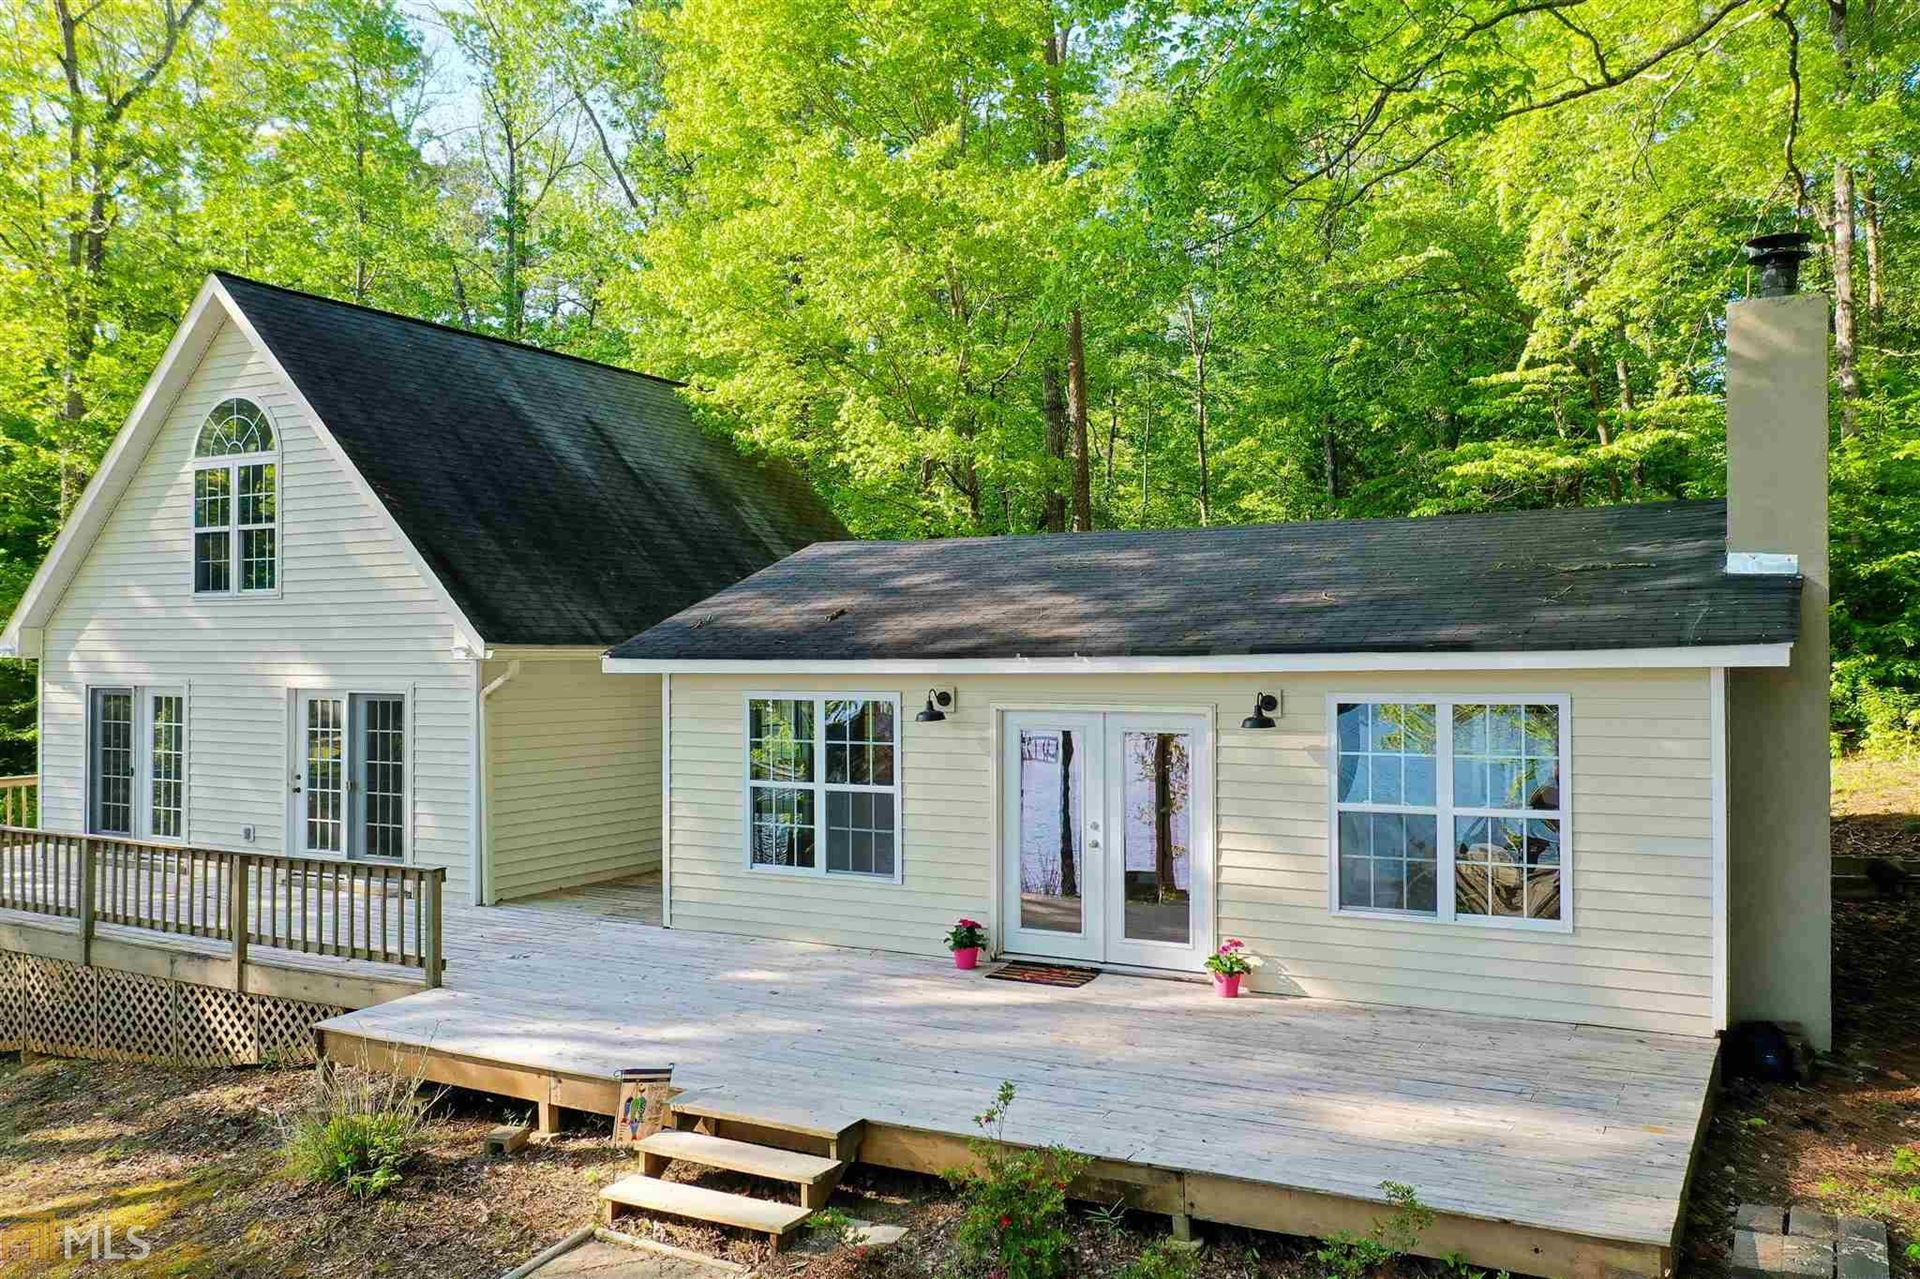 303 Thomas Dr, Eatonton, GA 31024 - MLS#: 8966988